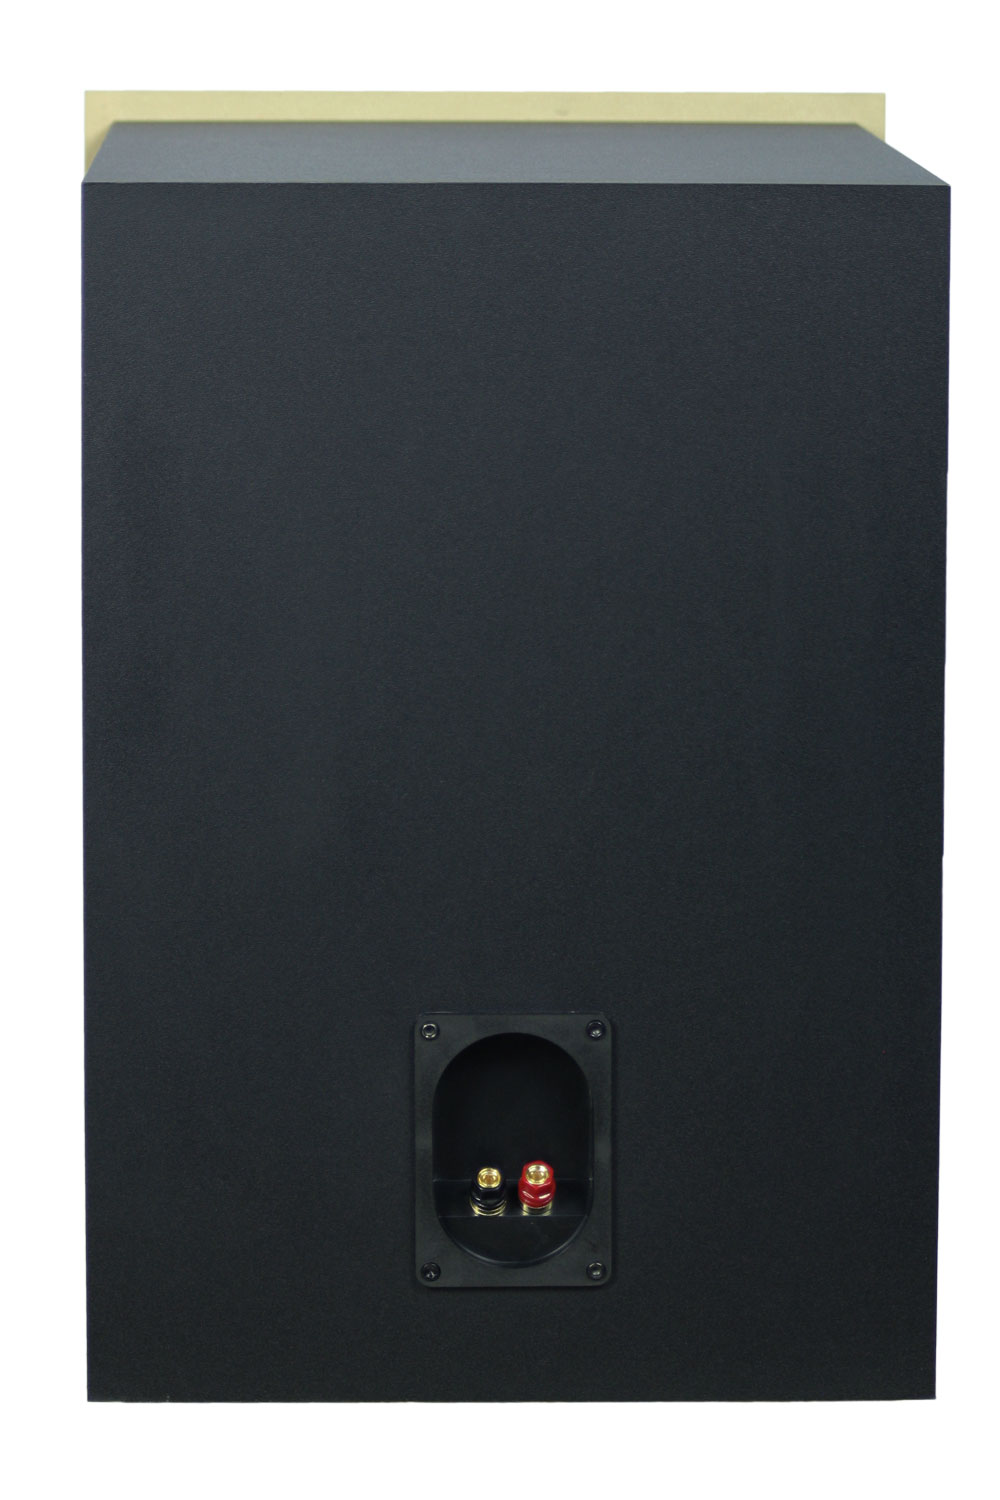 EP500 in-cabinet back